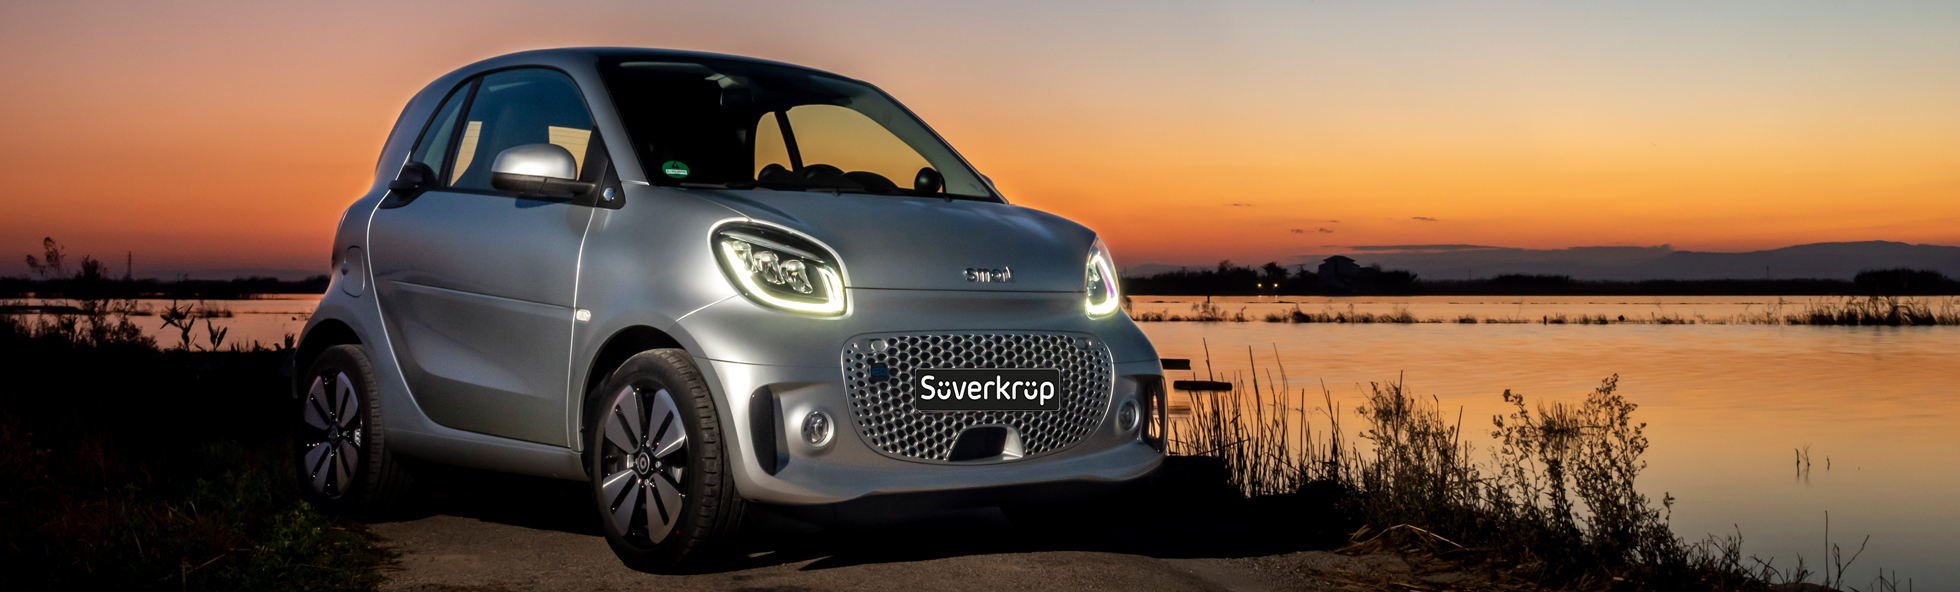 Slider smart eq fortwo coupé